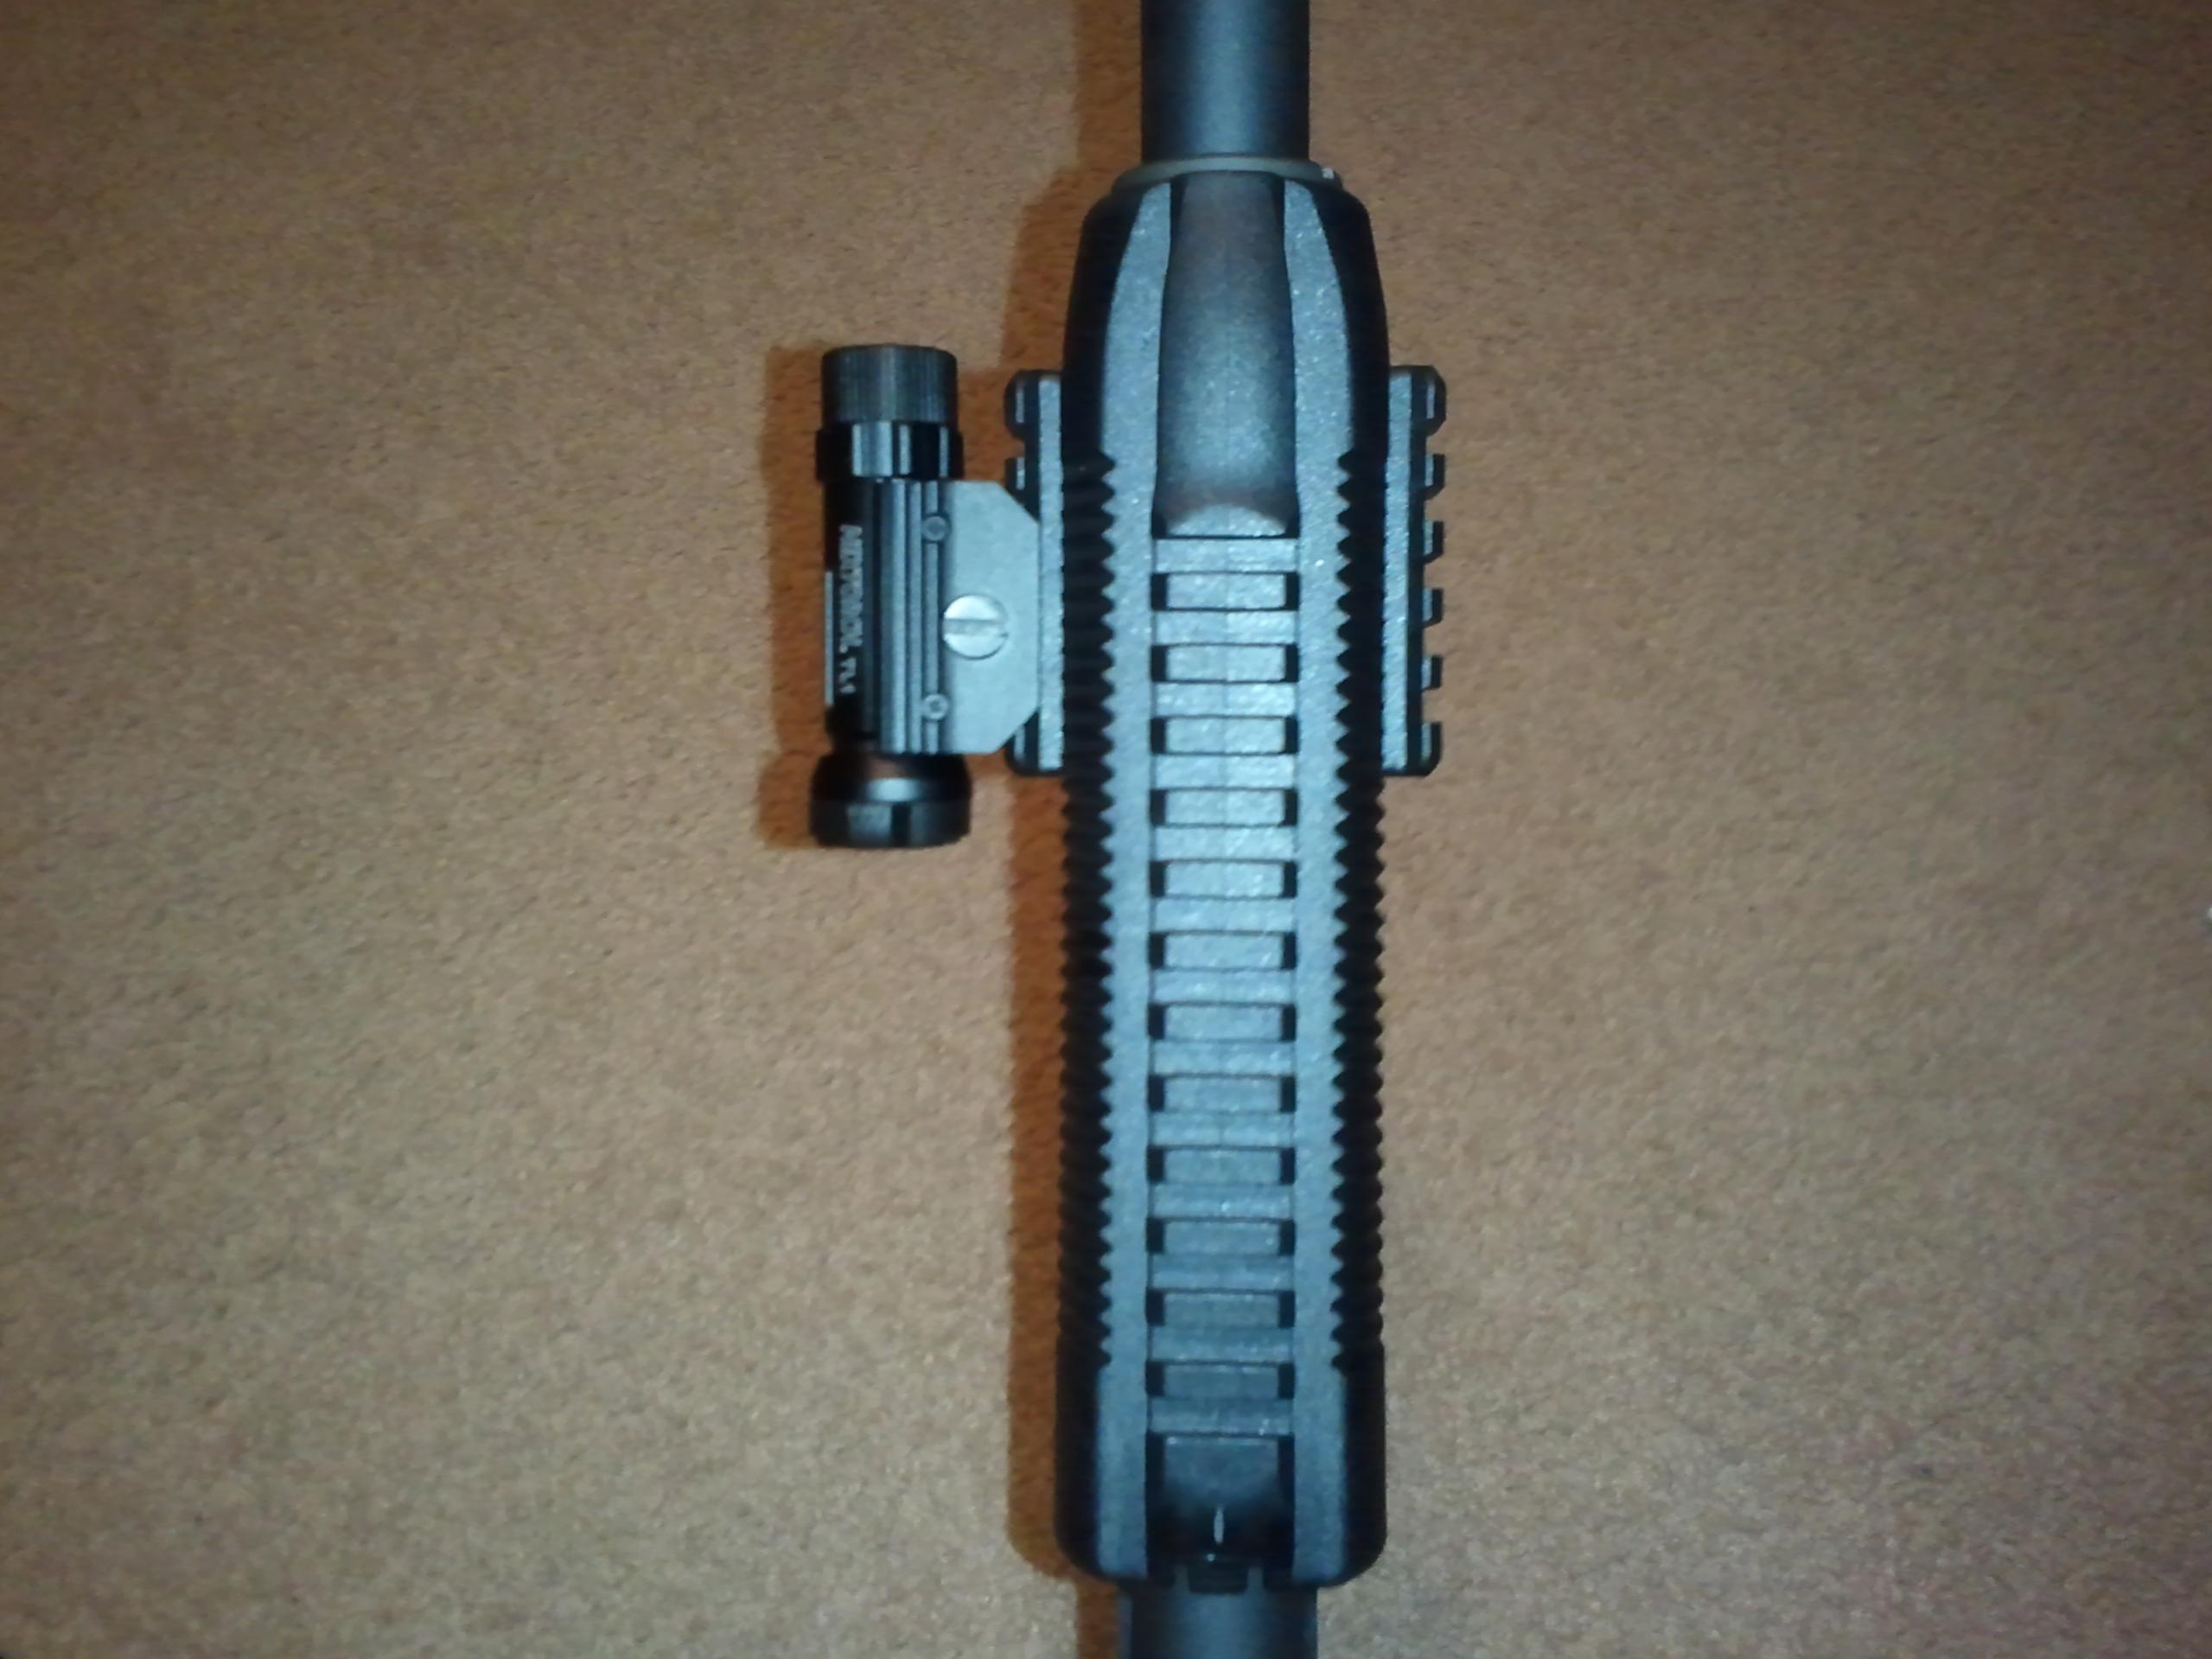 Adding picatinny rail to a stock Mossberg foregrip. Help!-2011-12-15_16.46.28.jpg